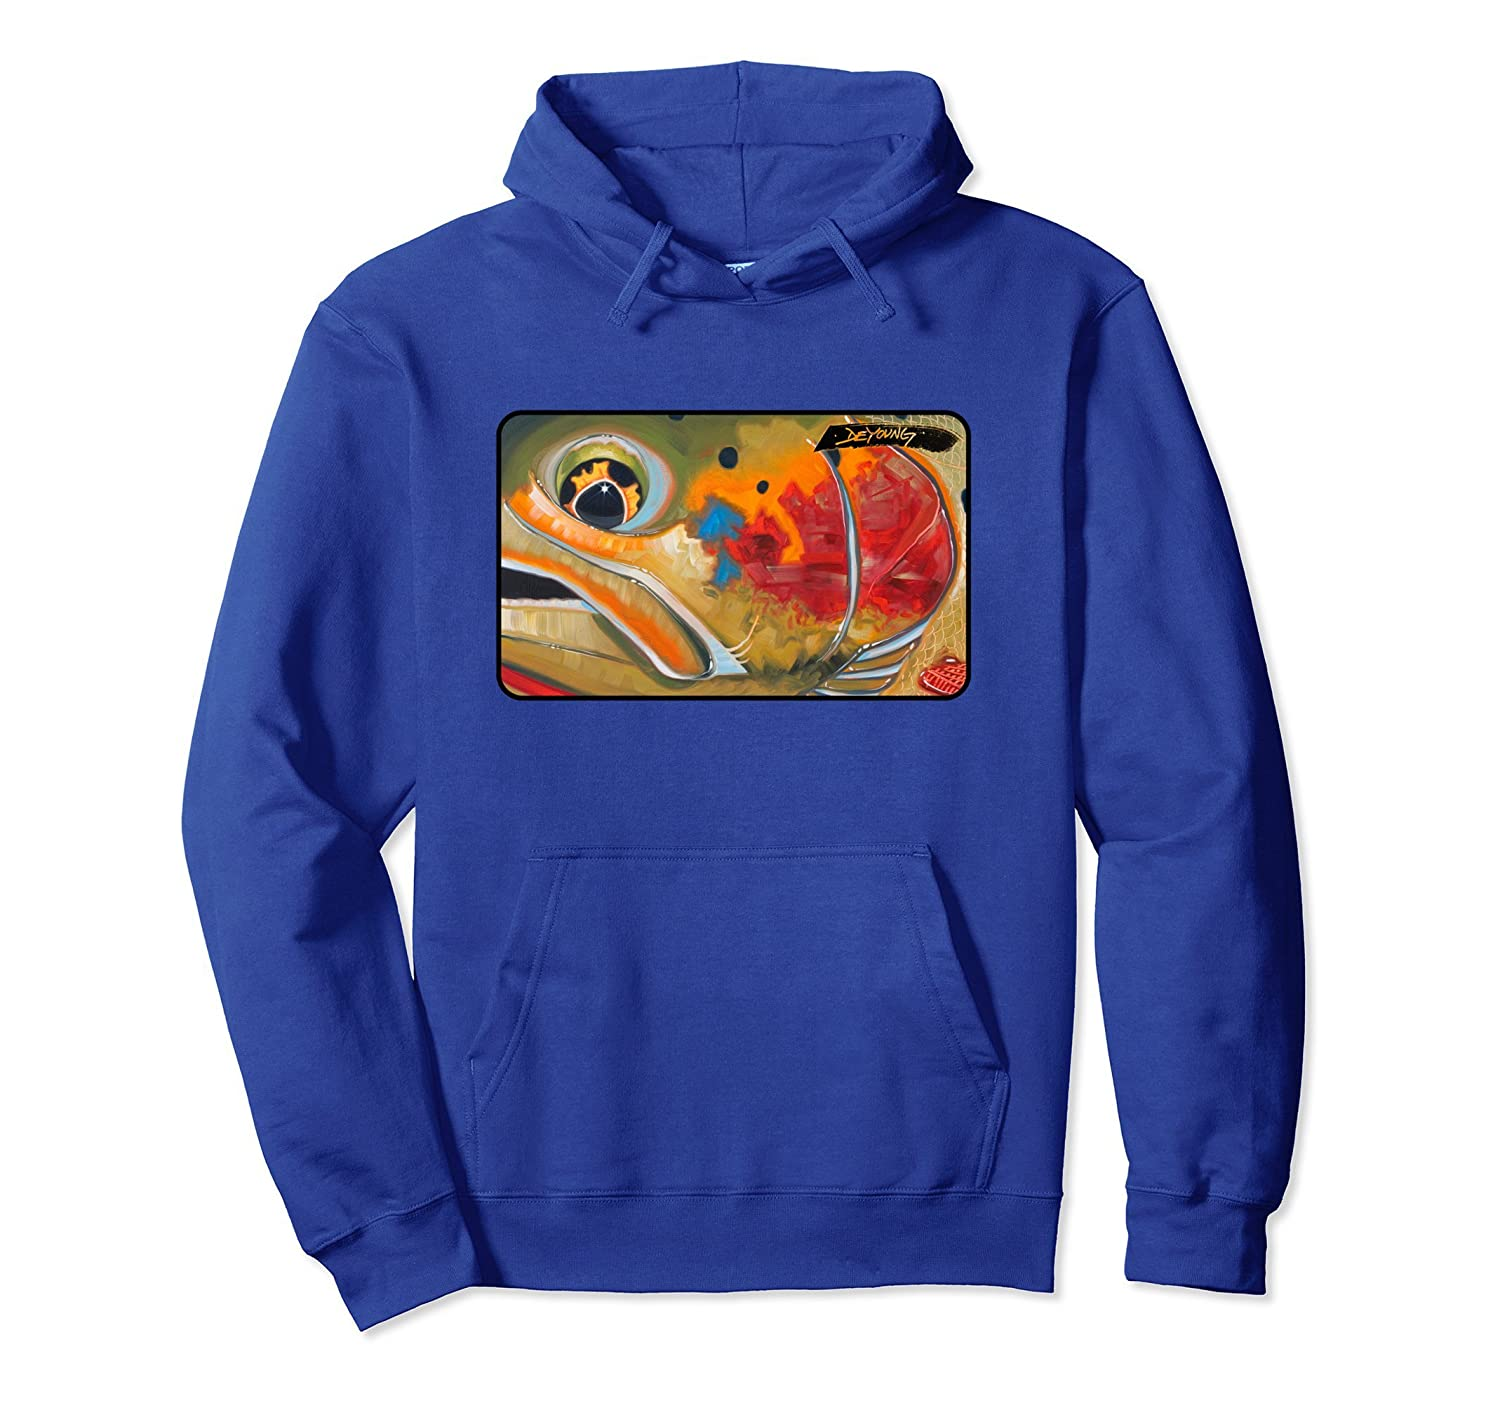 Cutthroat Yellowstone Fly Fishing Hoodie Derek DeYoung-ah my shirt one gift